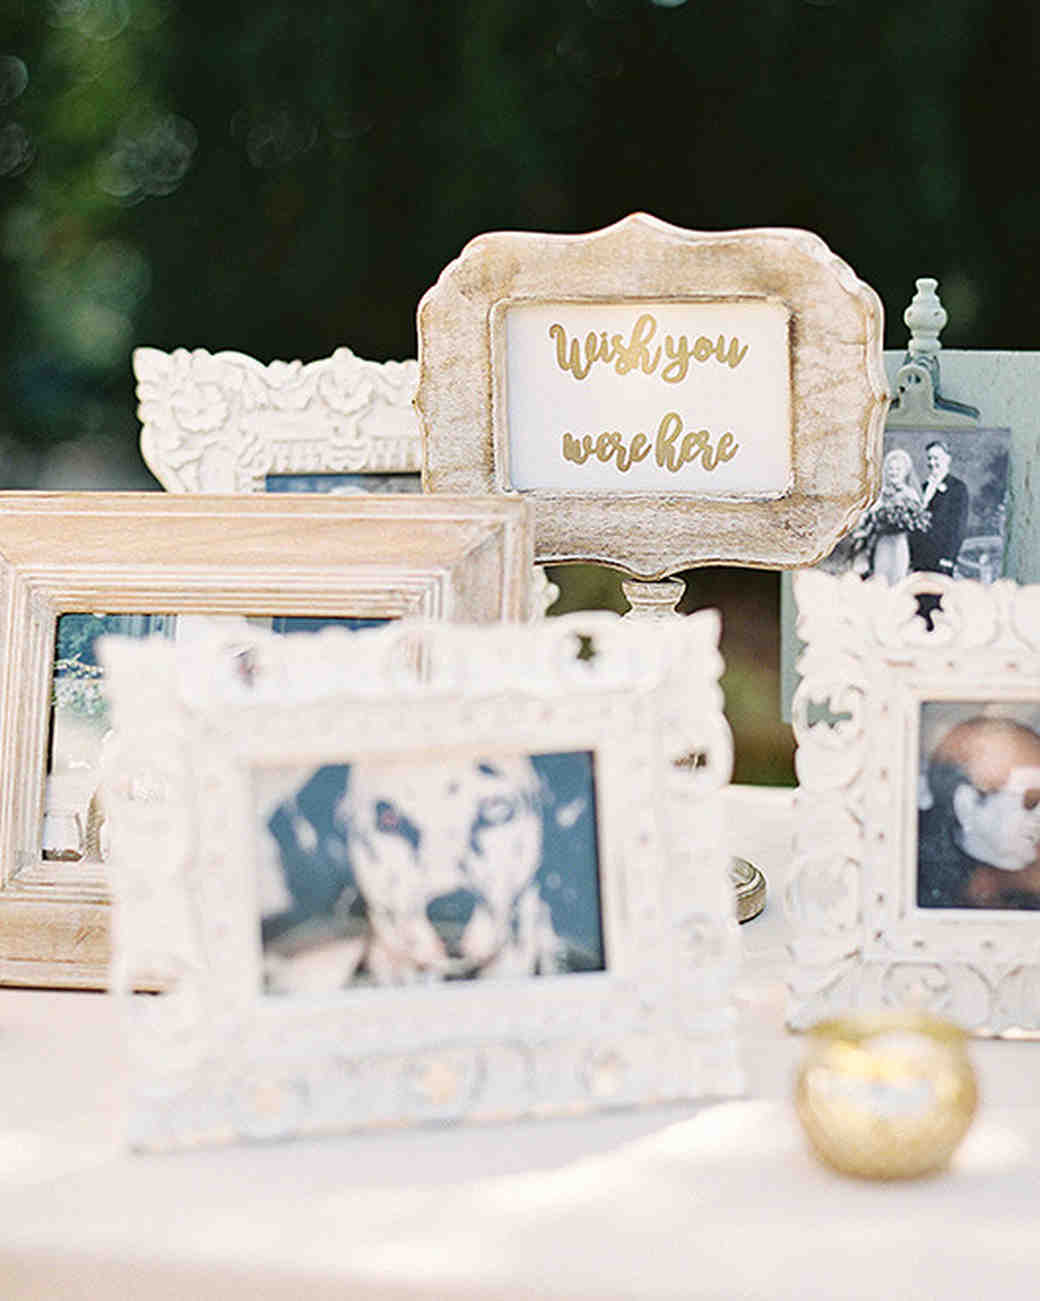 24 Unexpected Bridal Shower Ideas to Bookmark | Martha Stewart Weddings